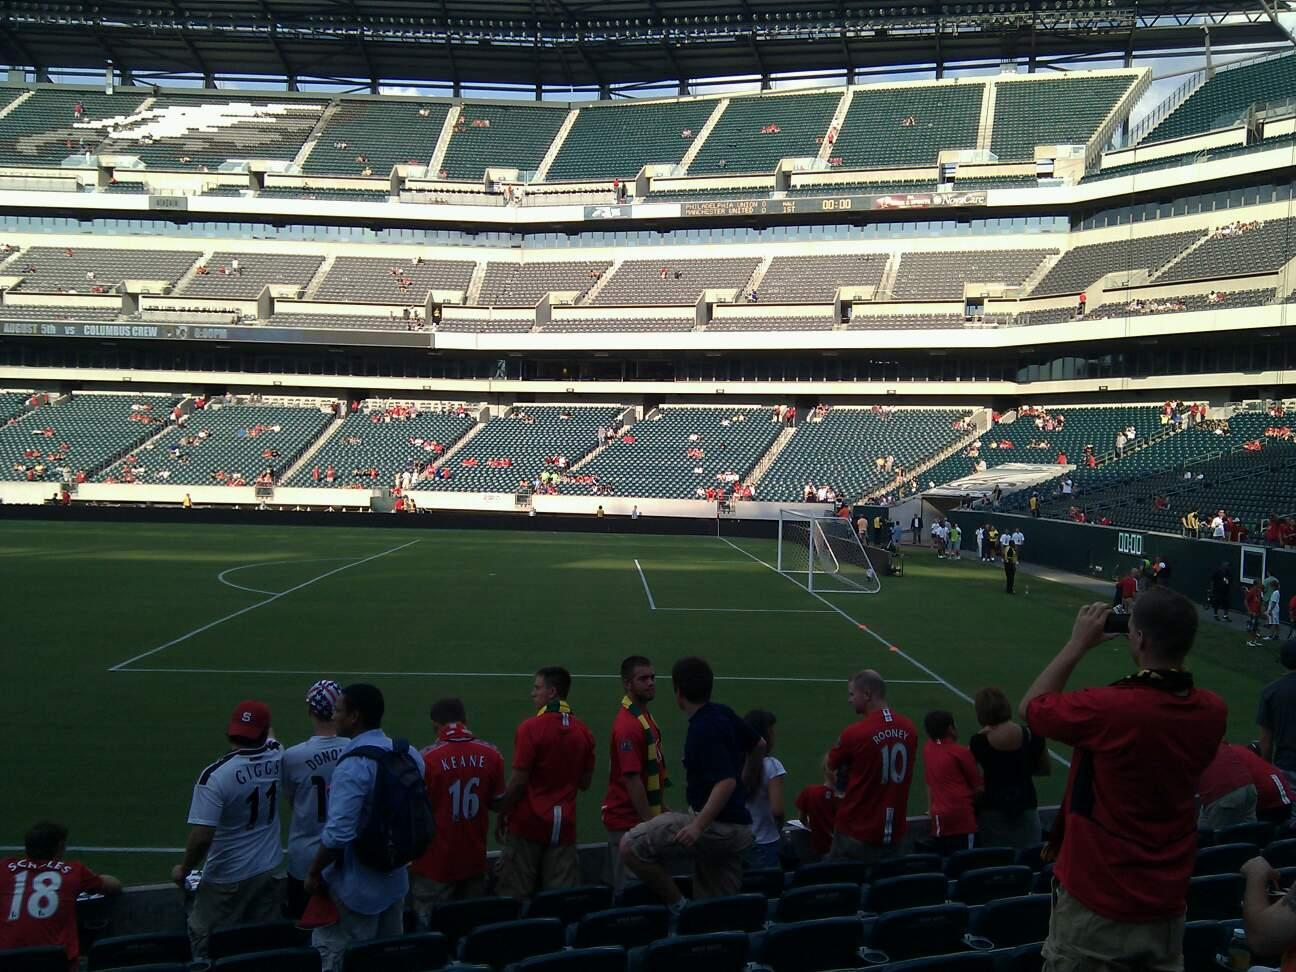 Lincoln Financial Field Section 105 Row 9 Seat 21